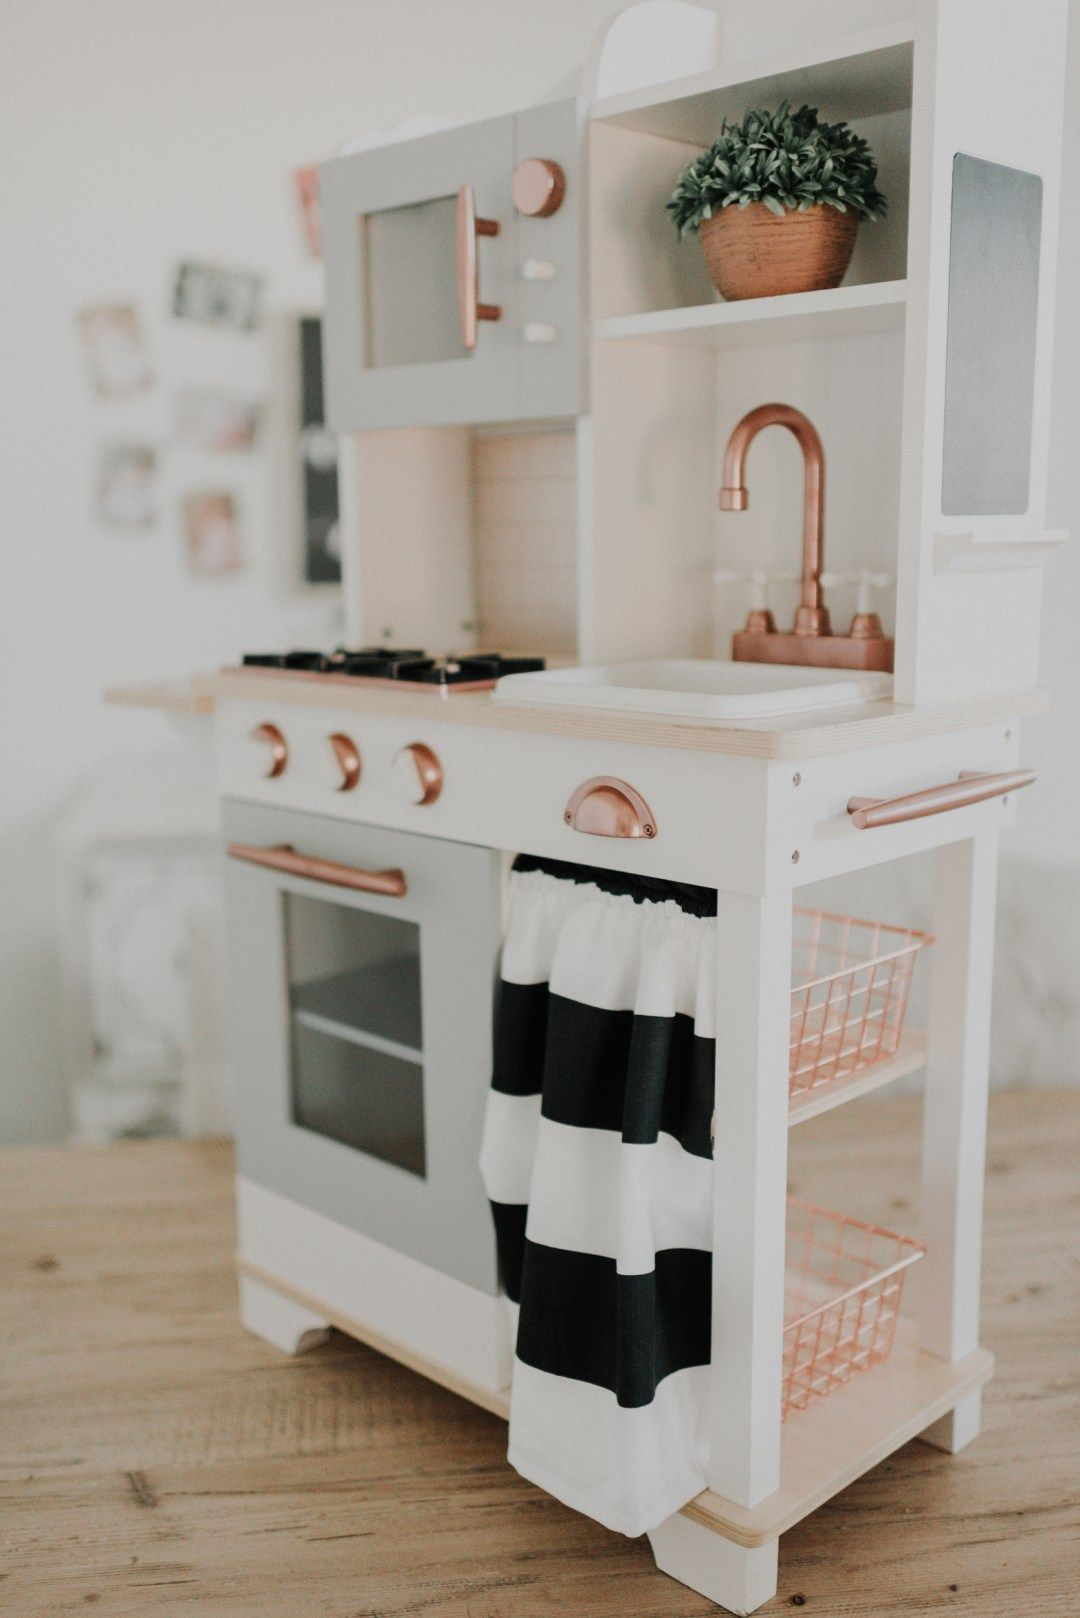 diy farmhouse modern play kitchen do it yourself pretend kitchen valentina 39 s room pinterest. Black Bedroom Furniture Sets. Home Design Ideas